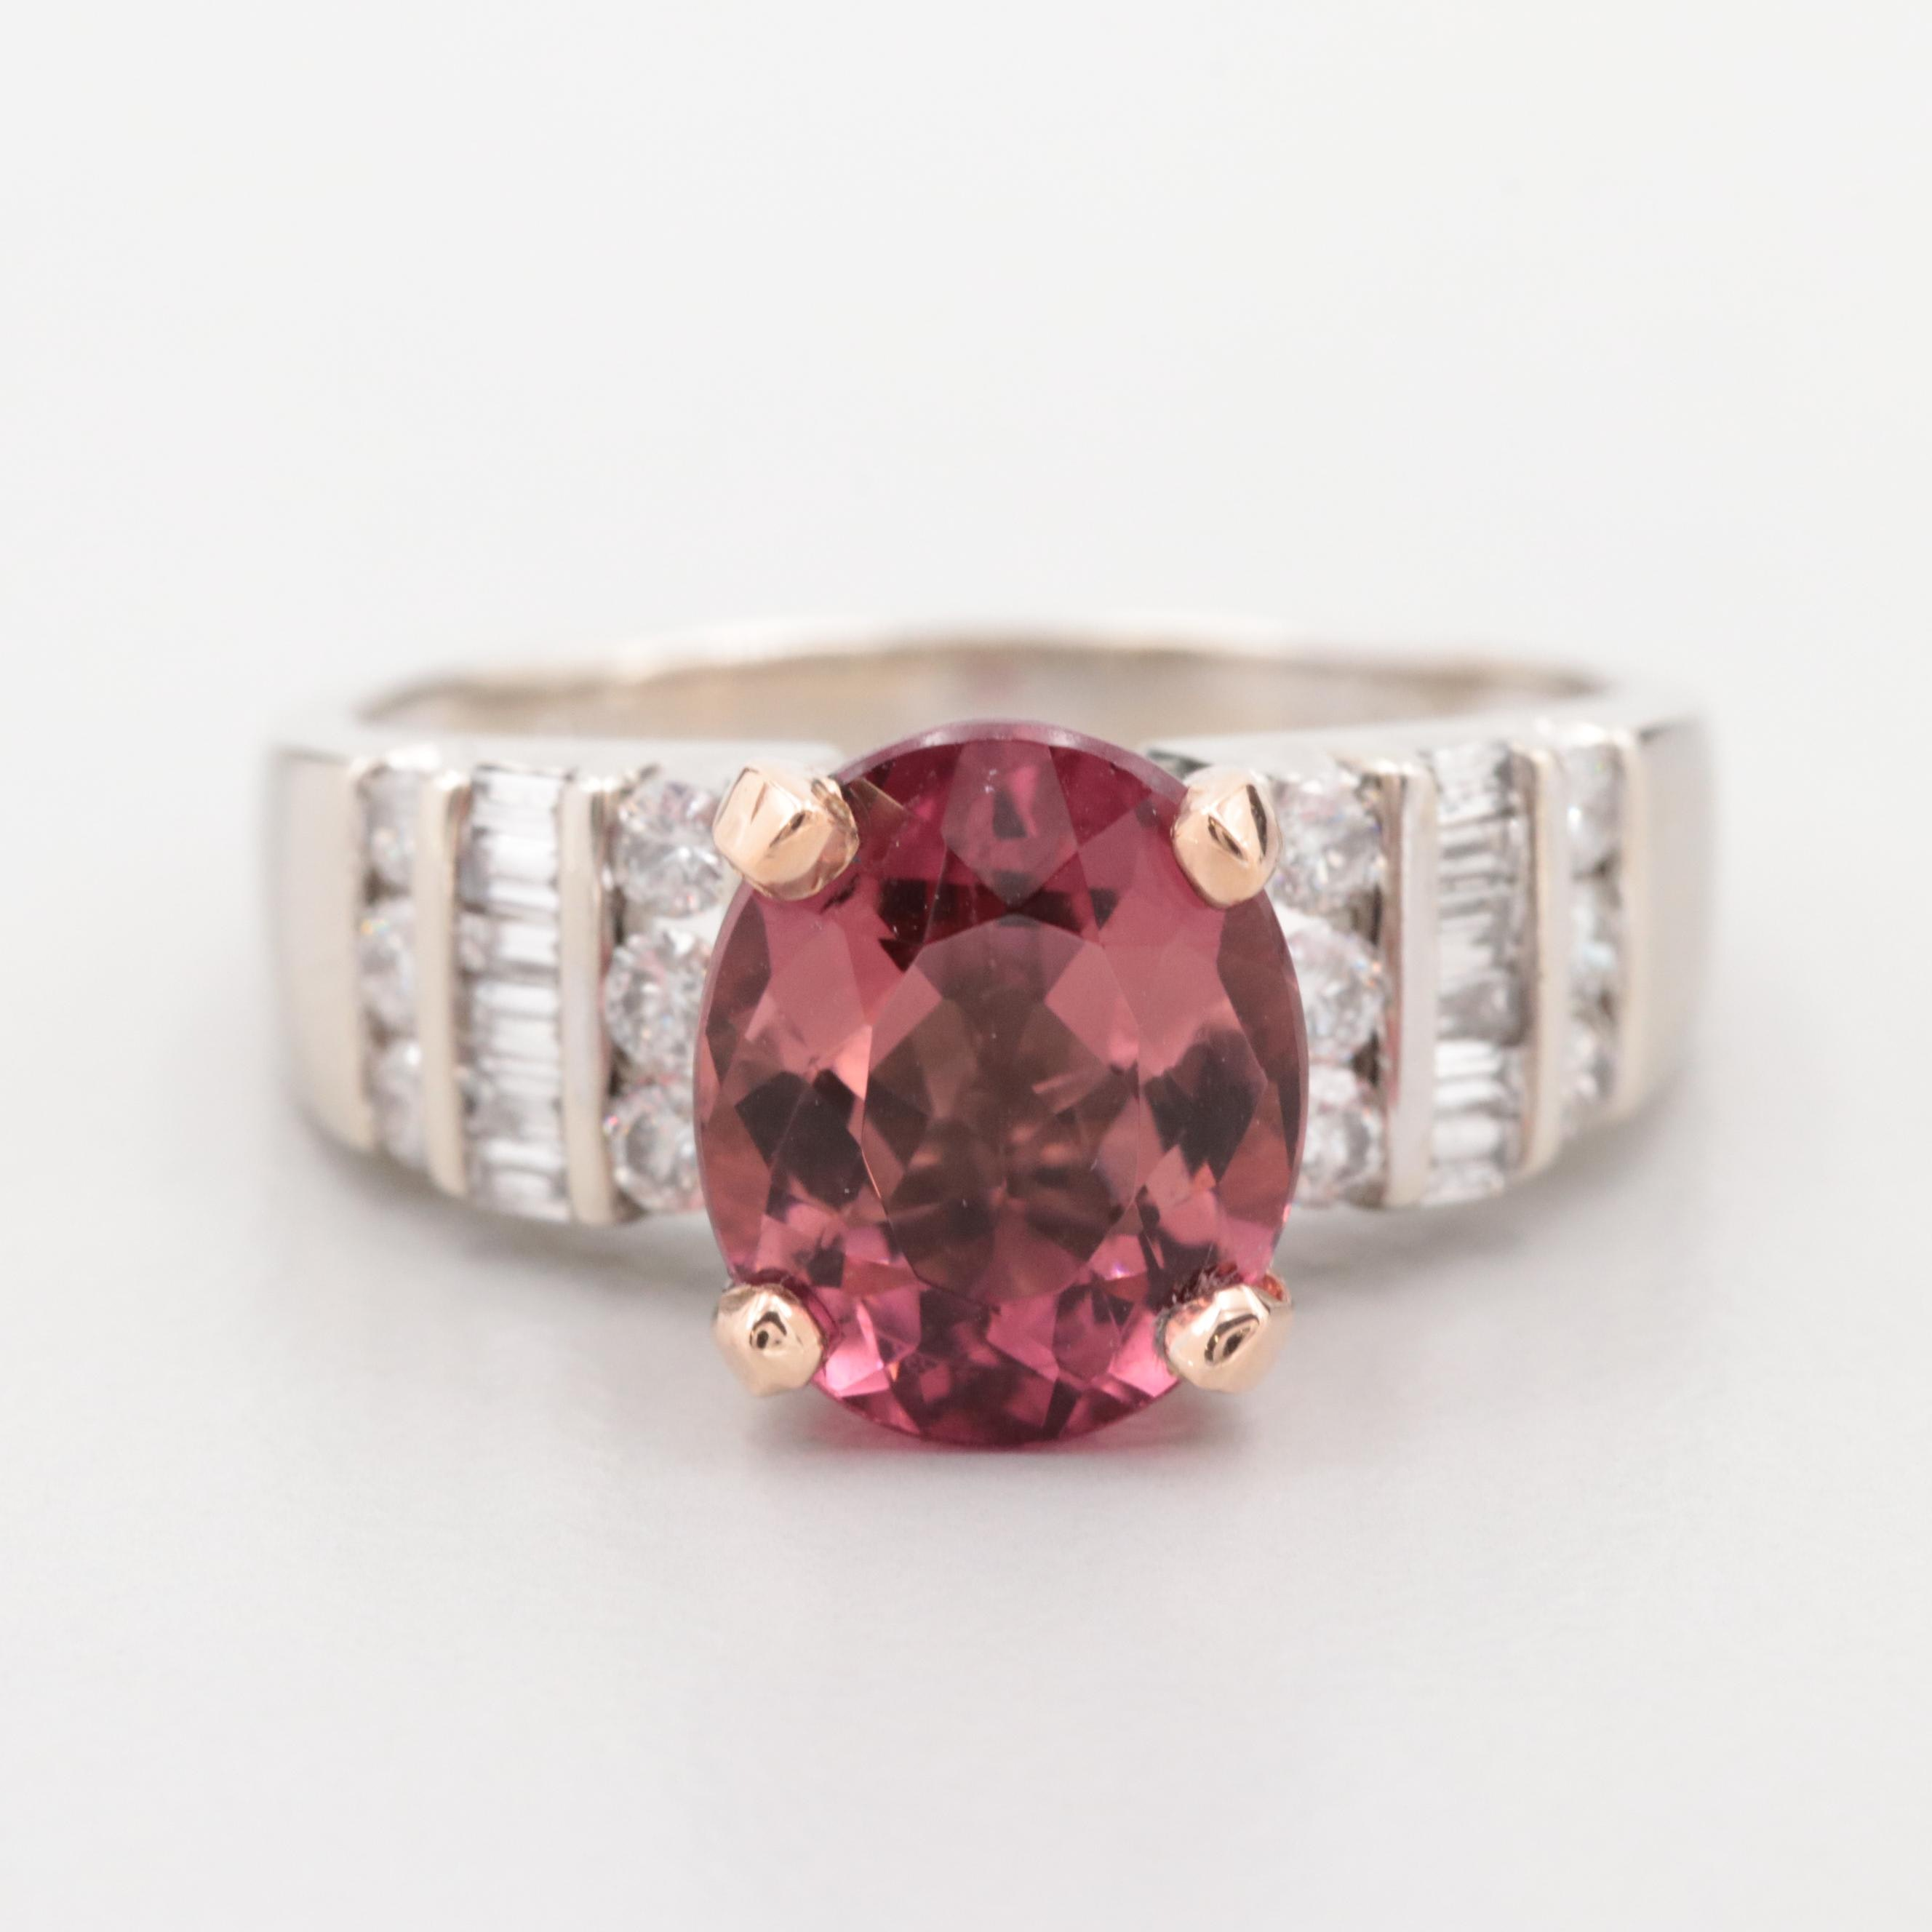 14K White Gold Tourmaline and Diamond Ring with 14K Rose Gold Accent